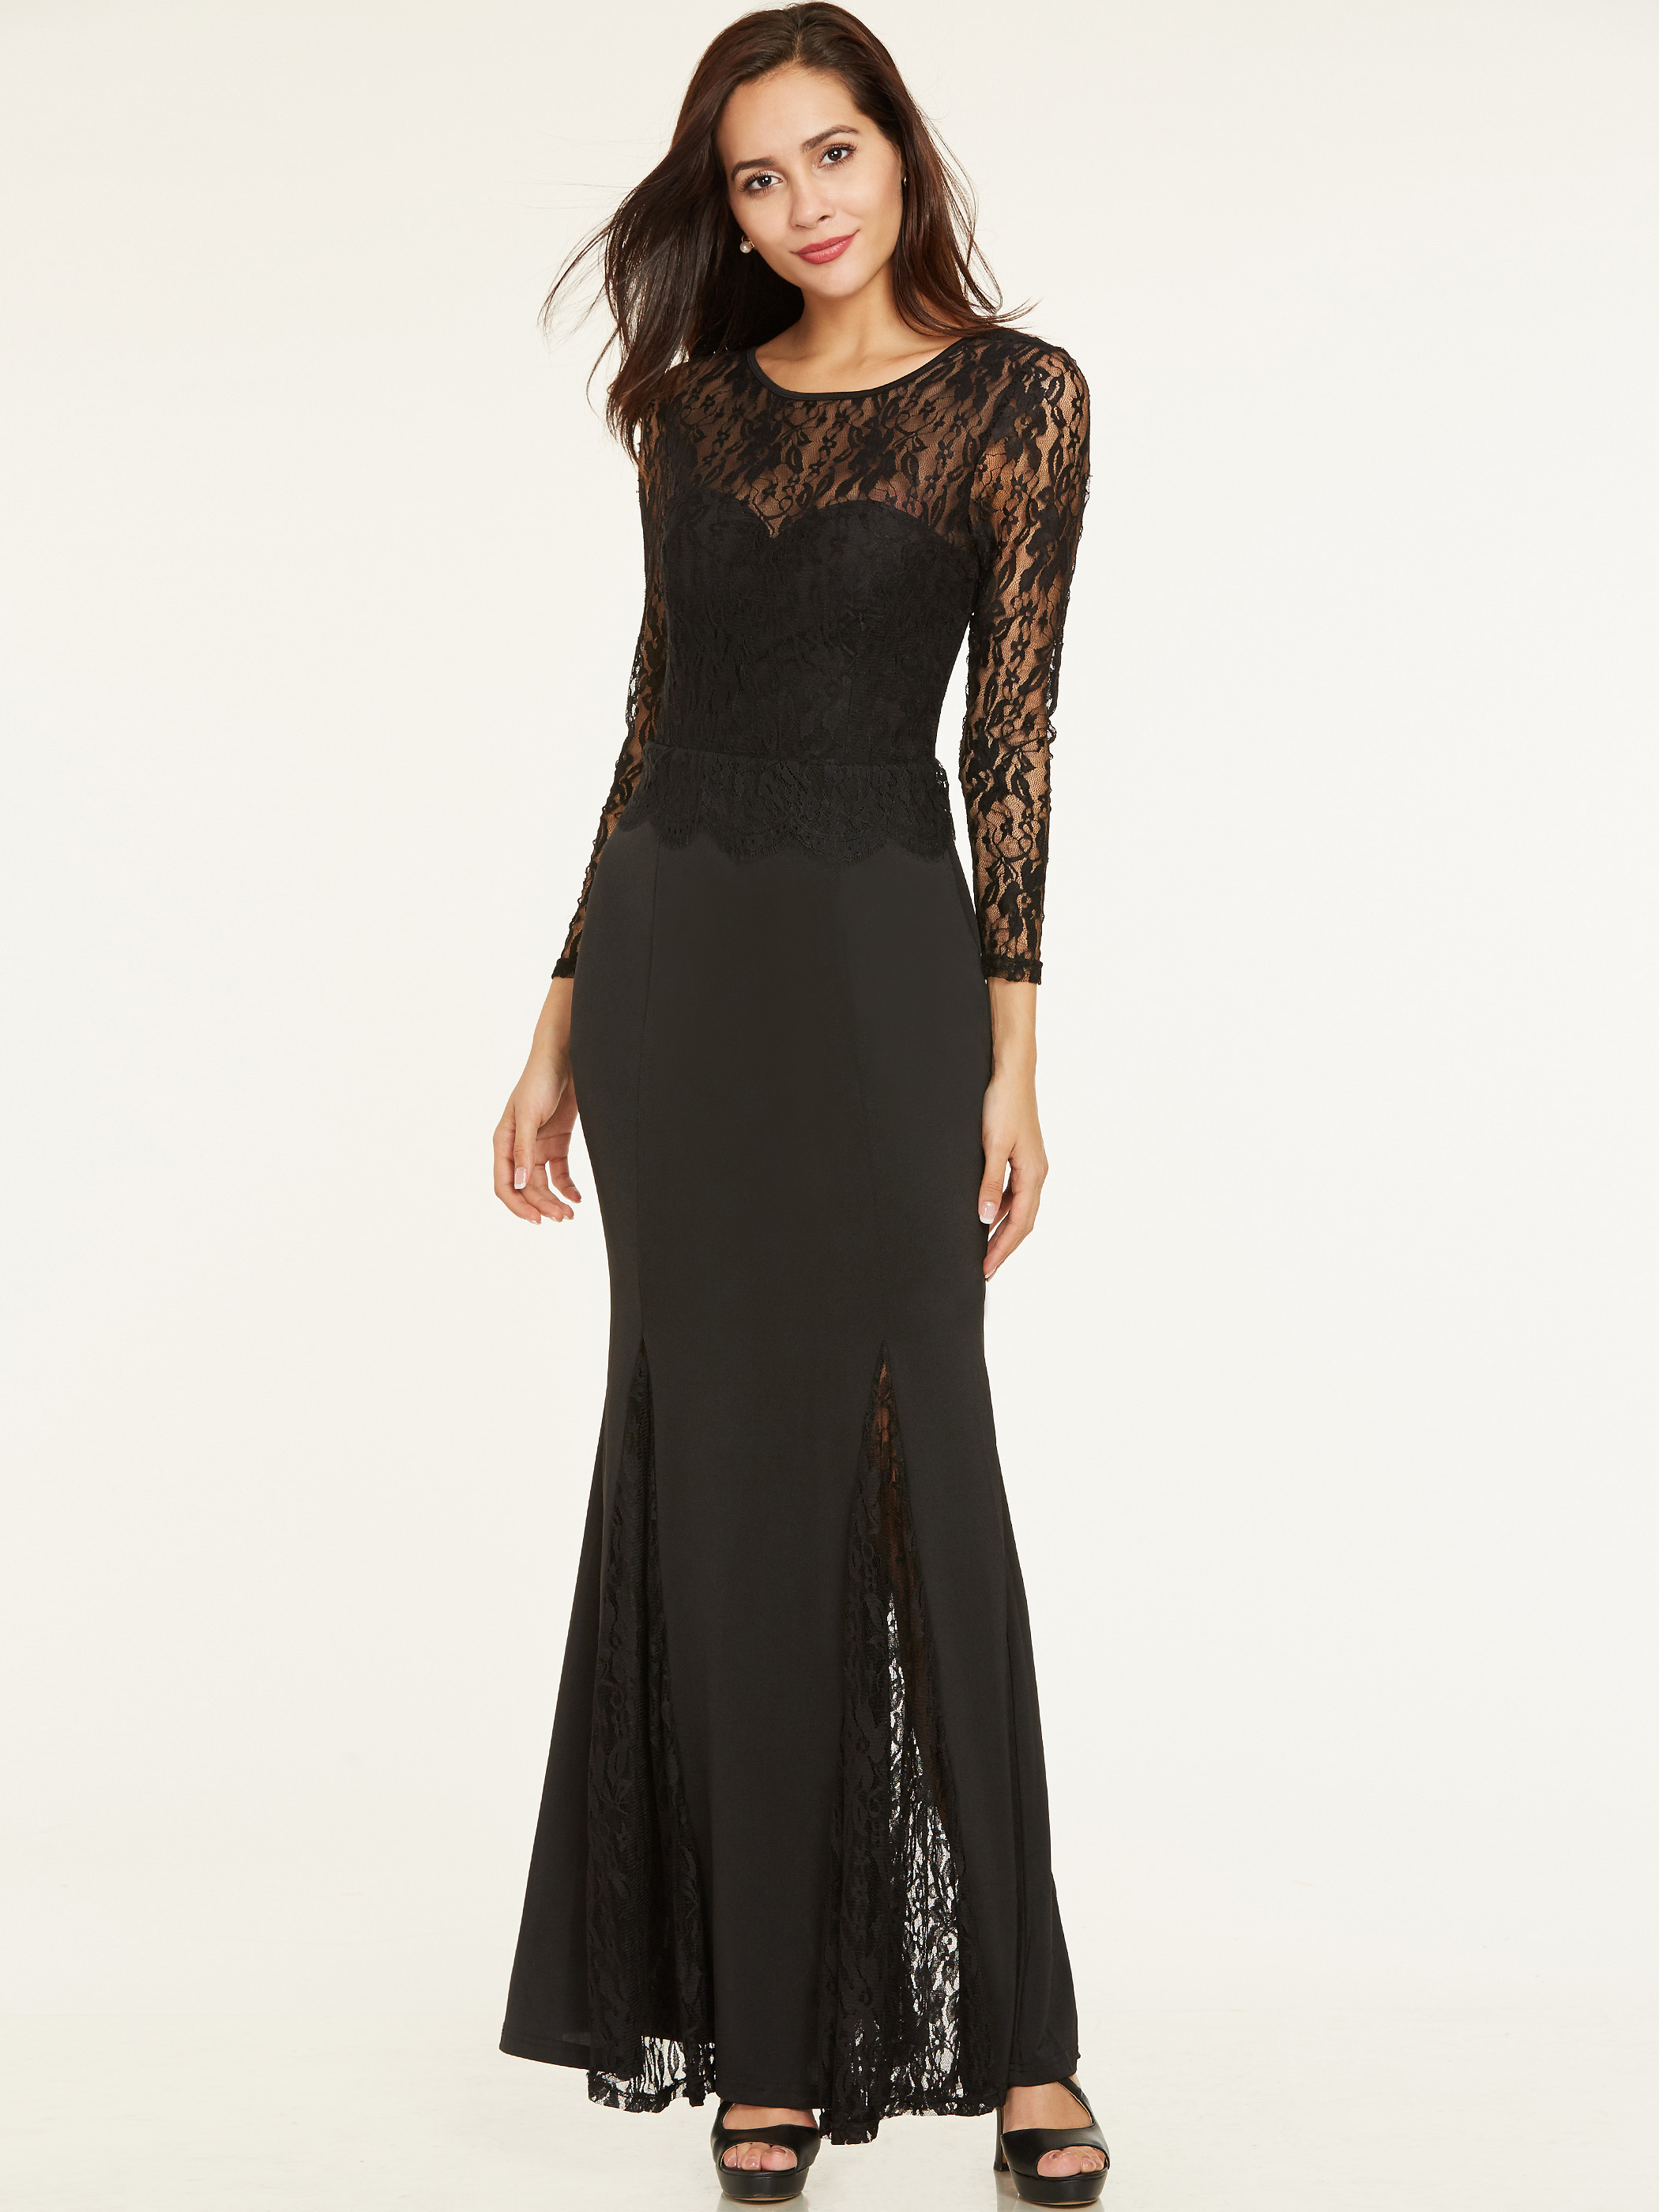 Dressv Lace Long Evening Dresses Black Scoop Neck Full Sleeves Floor Length A Line Gown Women Sexy Backless Formal Evening Gown